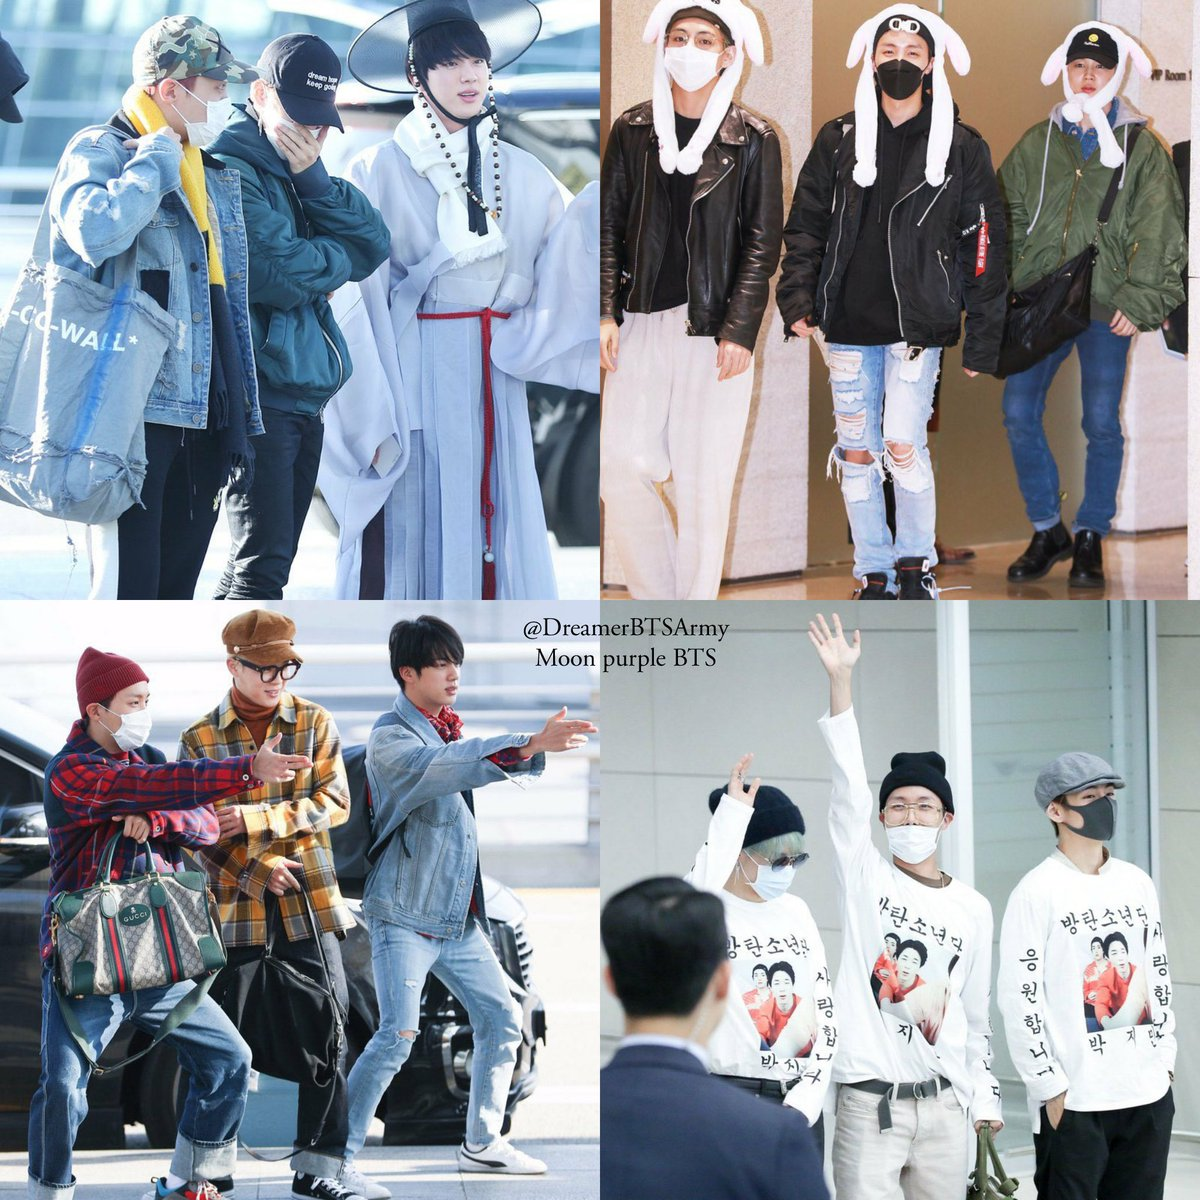 """@BTS_twt BTShave once again arrived at the airport dressed in their best """"penalty fashion!! Run BTSpenalities have become legendary. 😂😂😂😂🤟😍👏👏 in Incheon Airport ✈️ BTS FLOWERS🌻 #BTS #BTSFESTA2019"""